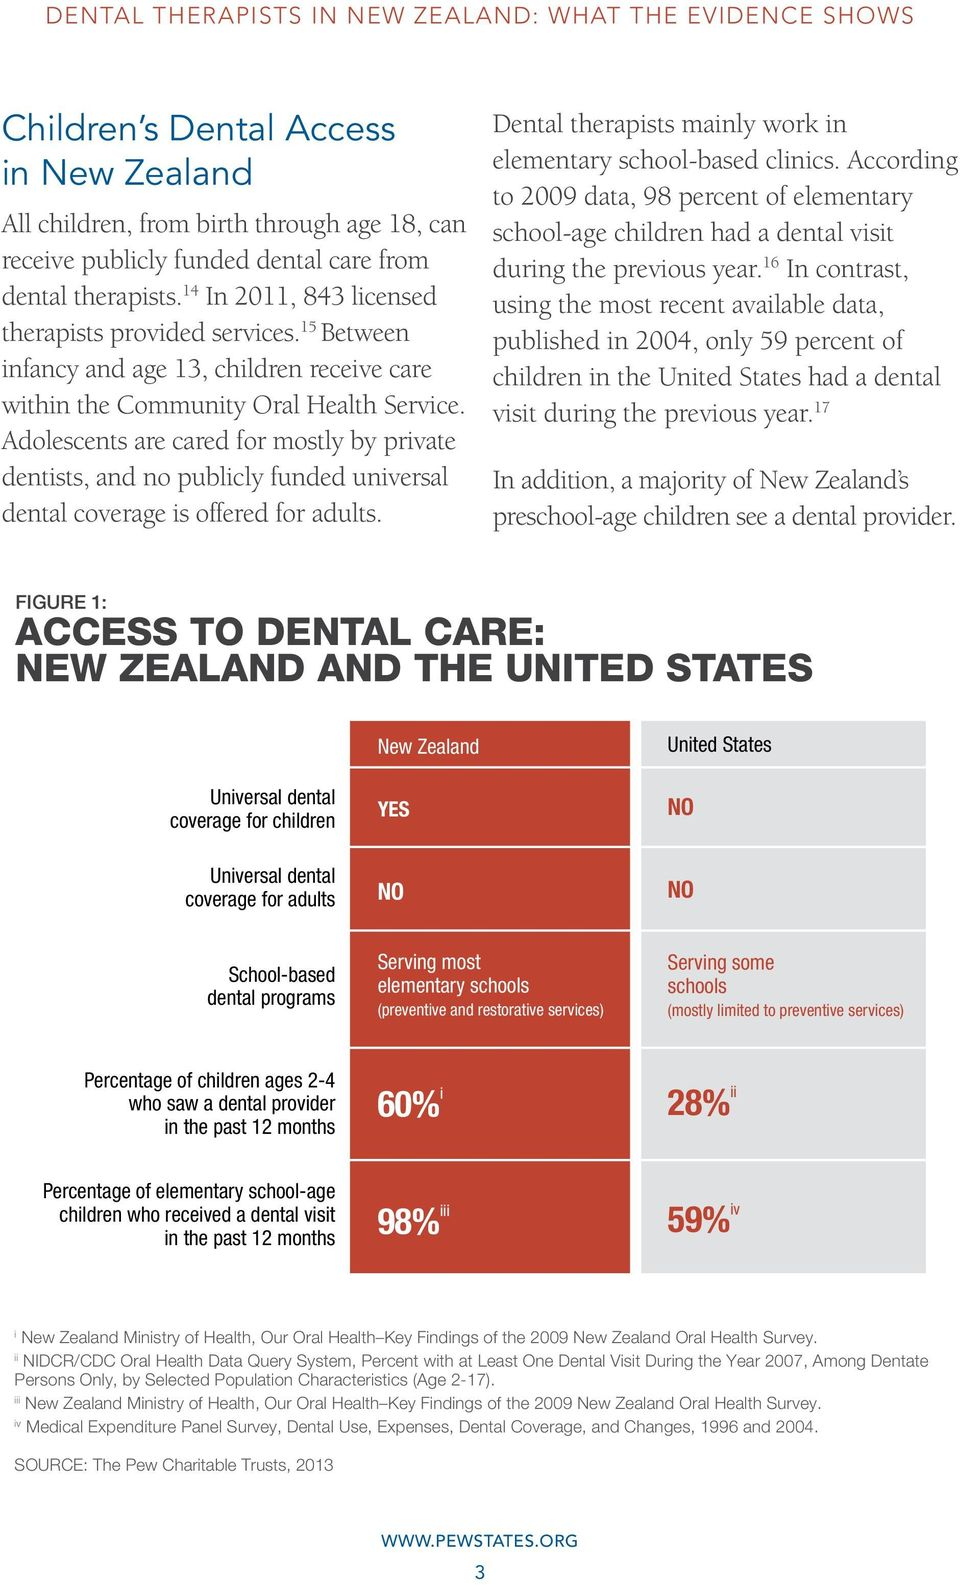 Adolescents are cared for mostly by private dentists, and no publicly funded universal dental coverage is offered for adults. Dental therapists mainly work in elementary school-based clinics.